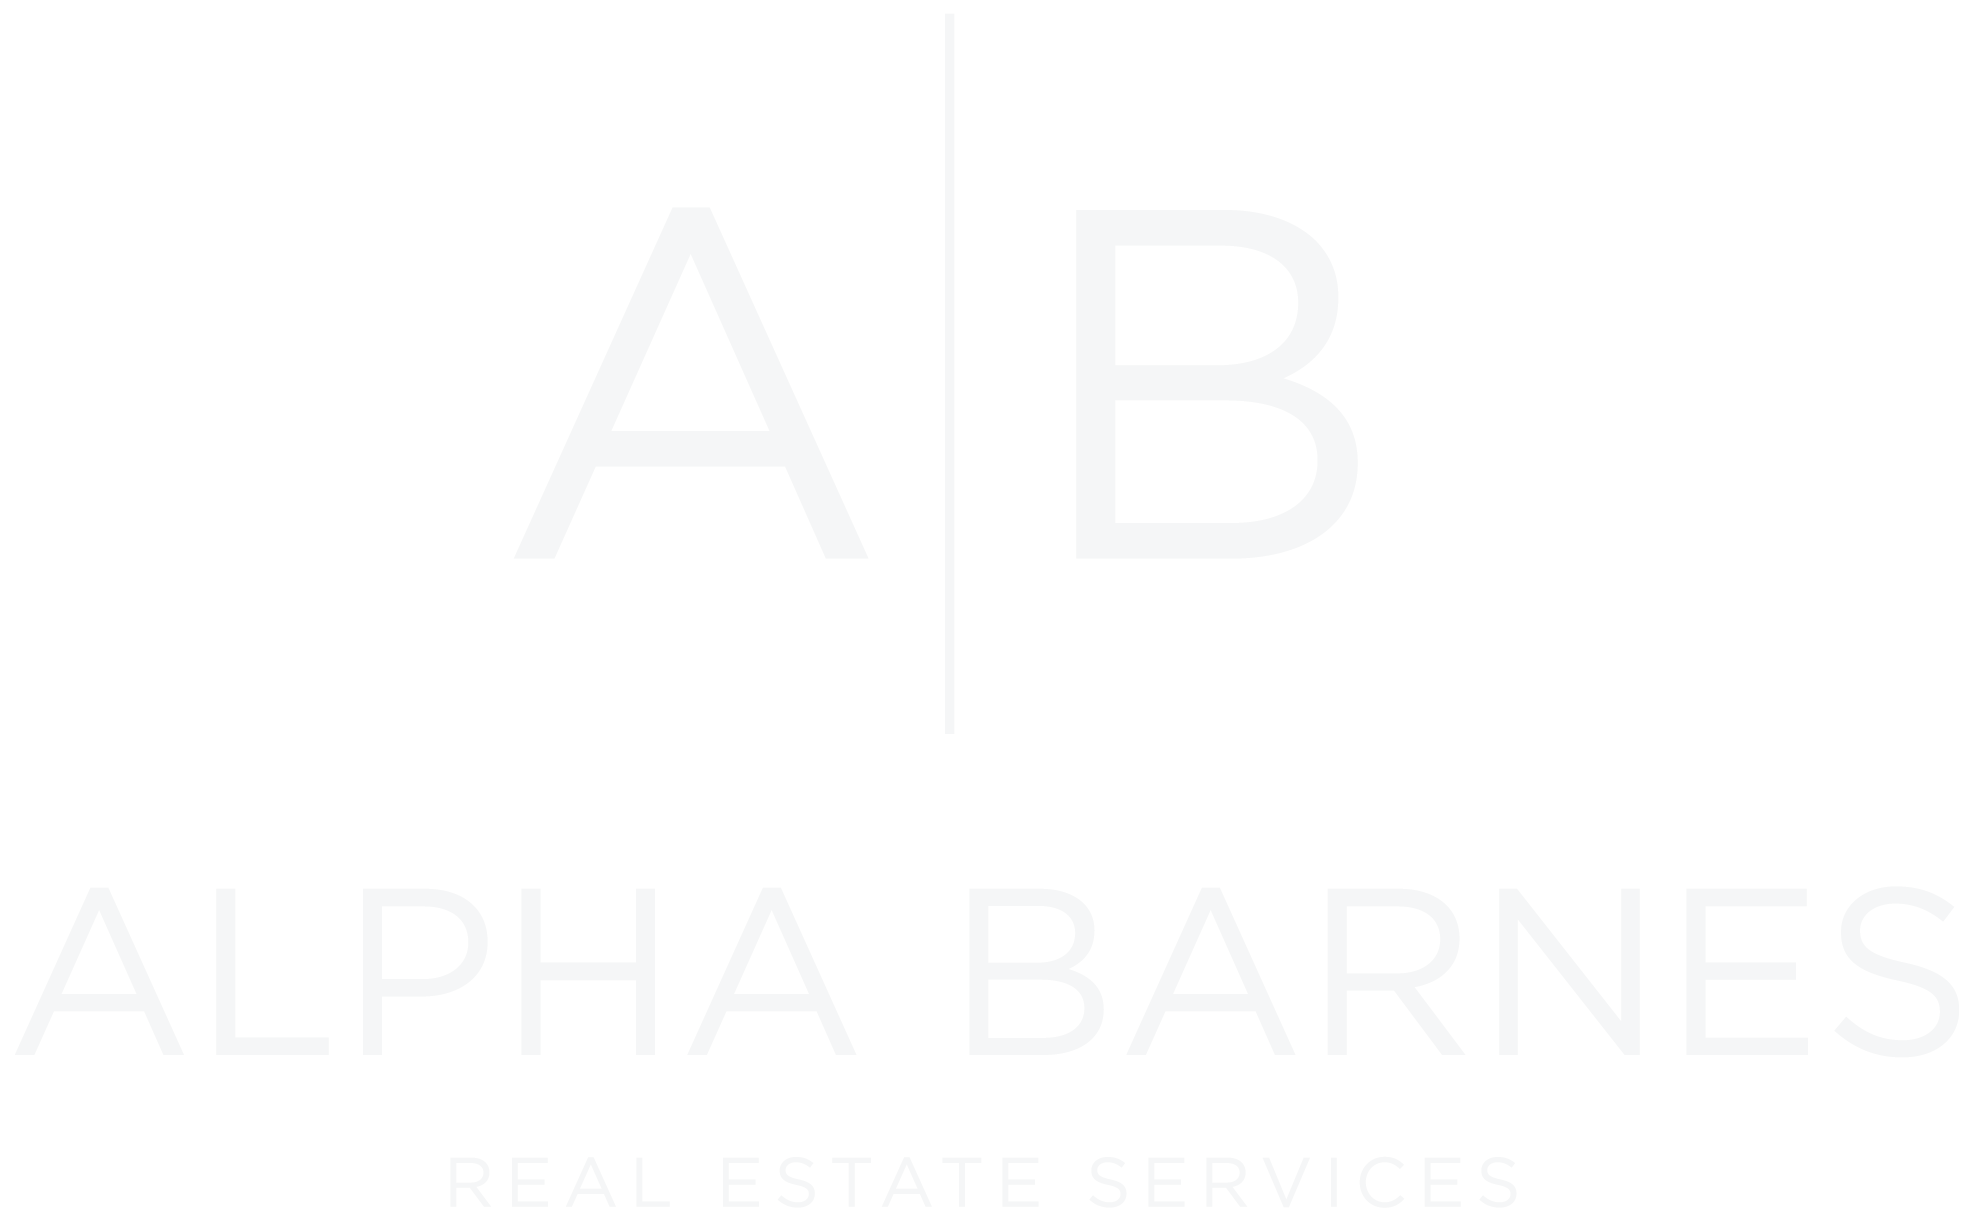 Alpha Barnes Real Estate Services